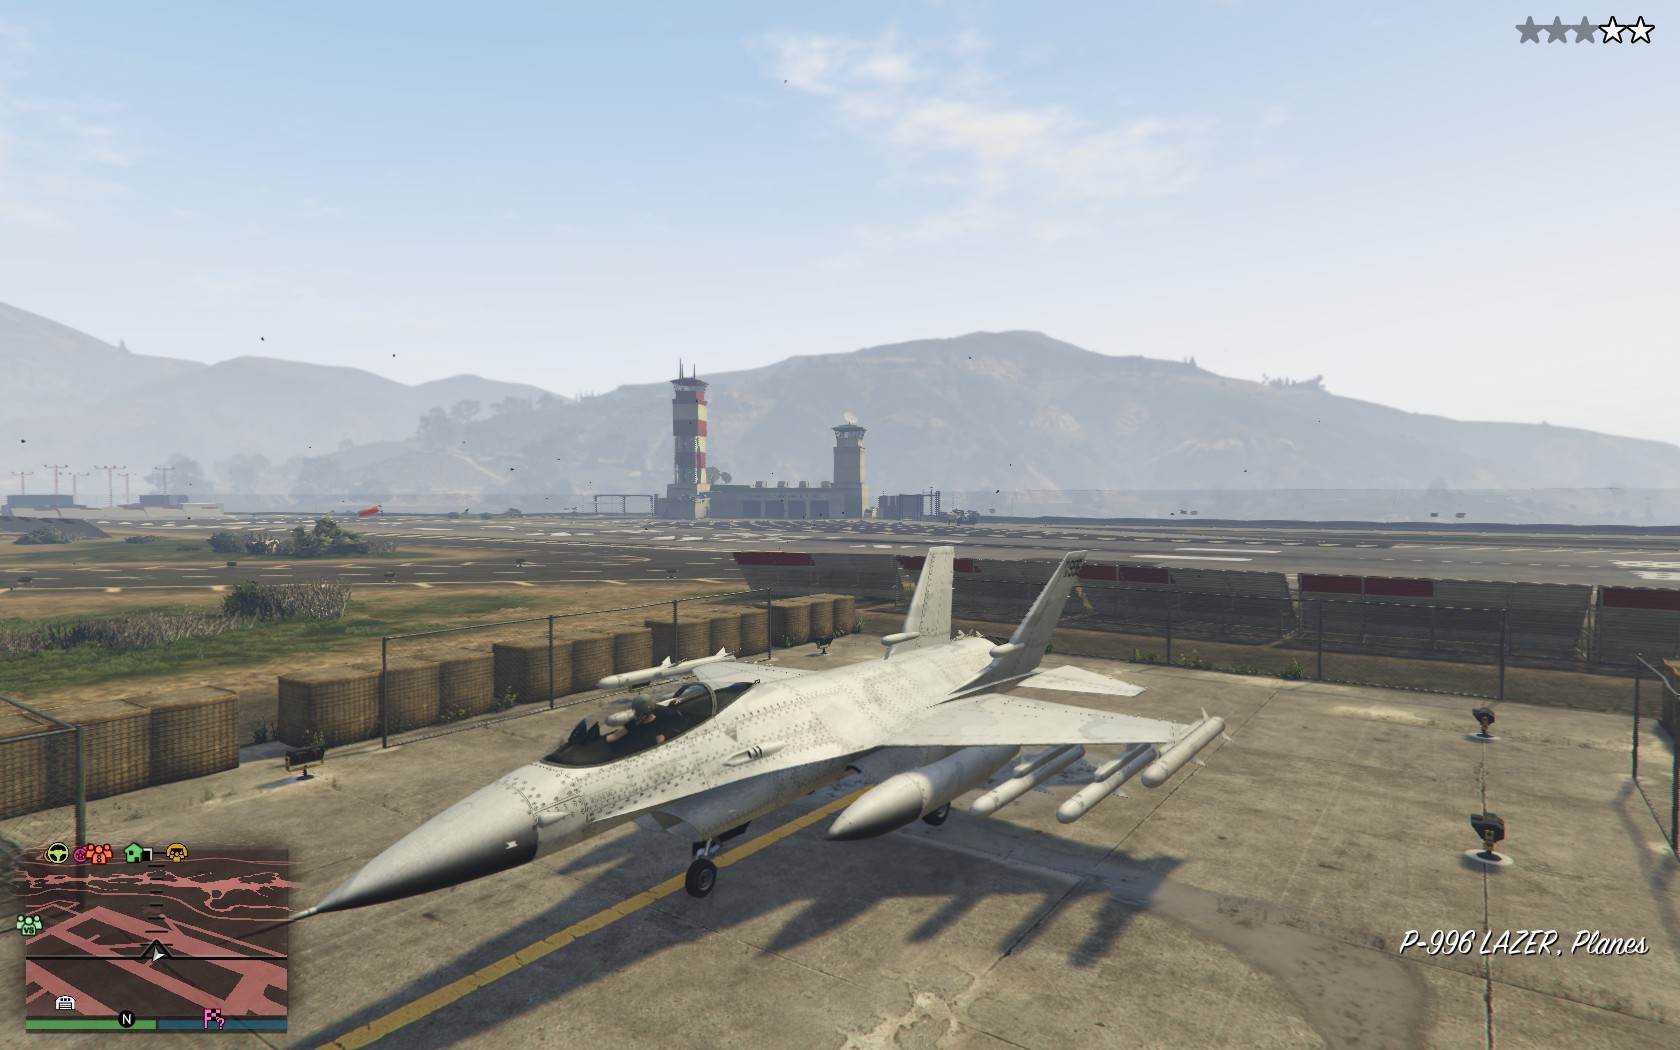 You can now buy the old Lazer jet in GTA Online for an eye